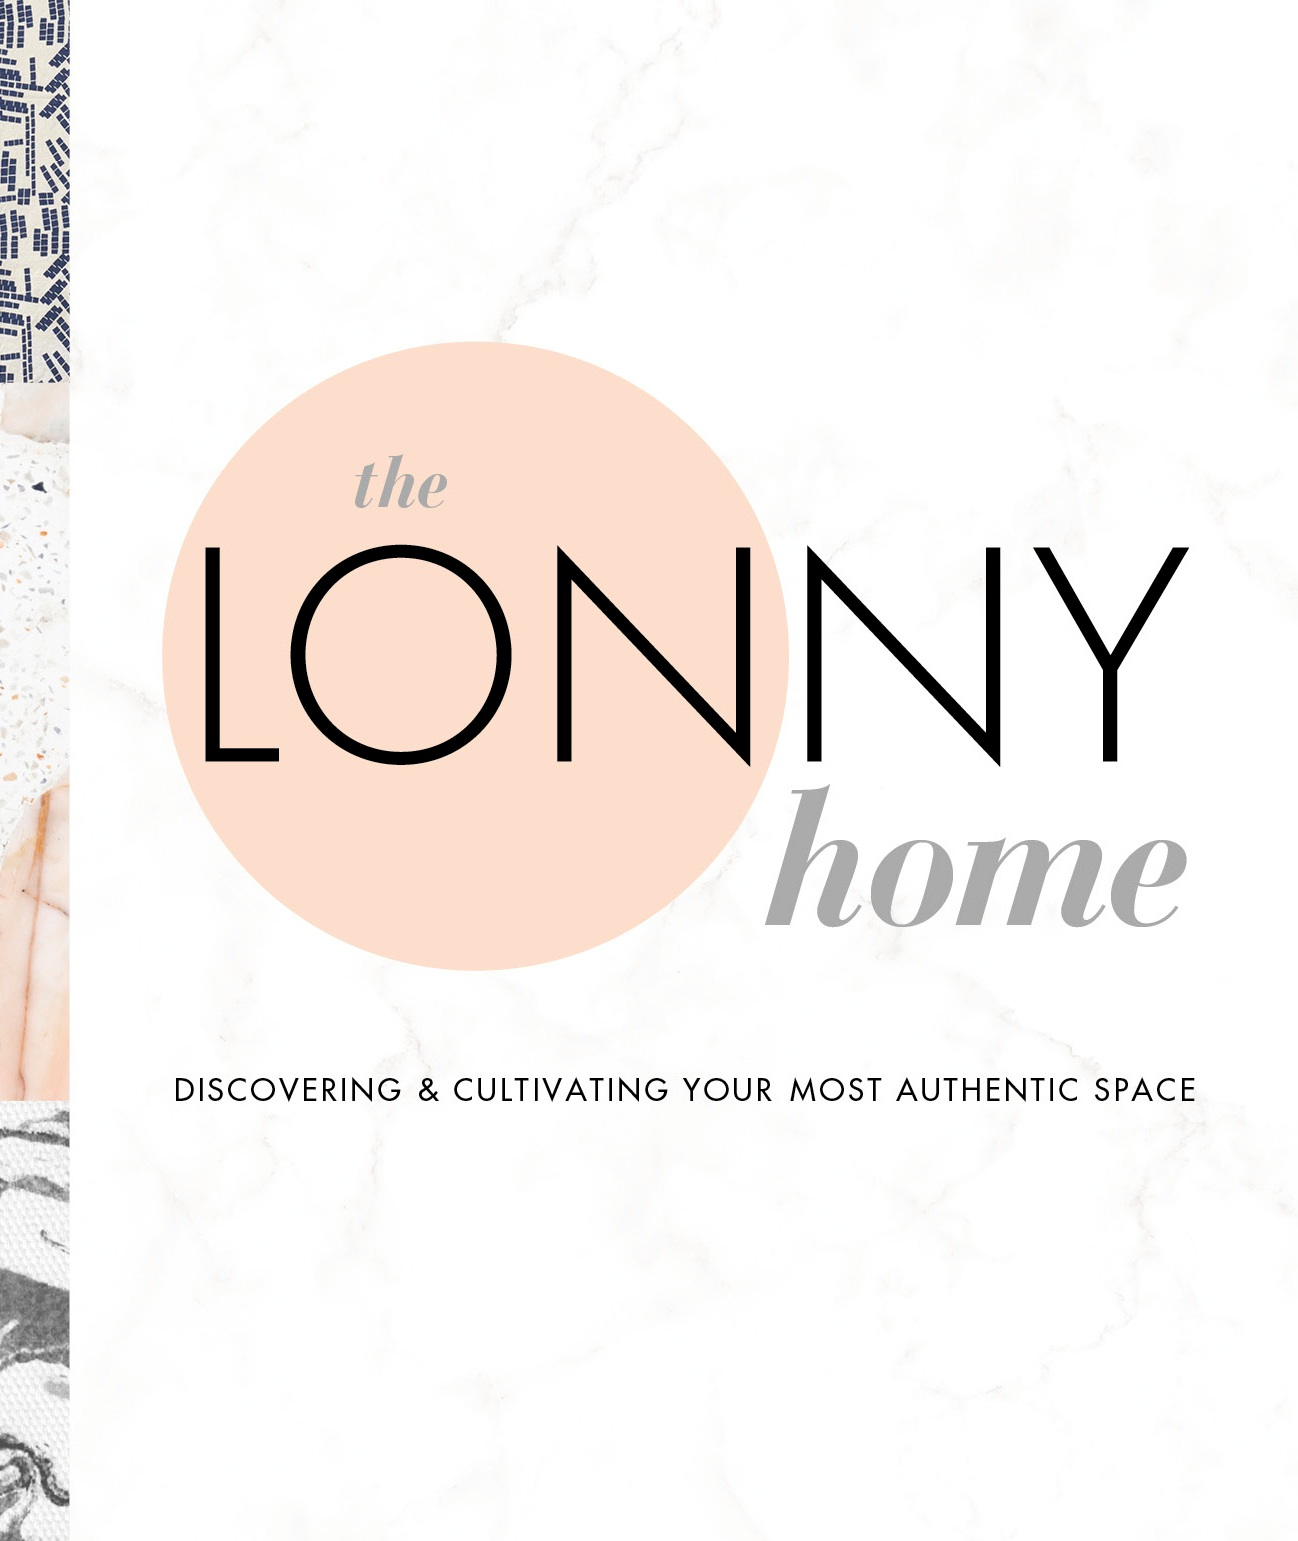 THE LONNY HOME // MAY 2019